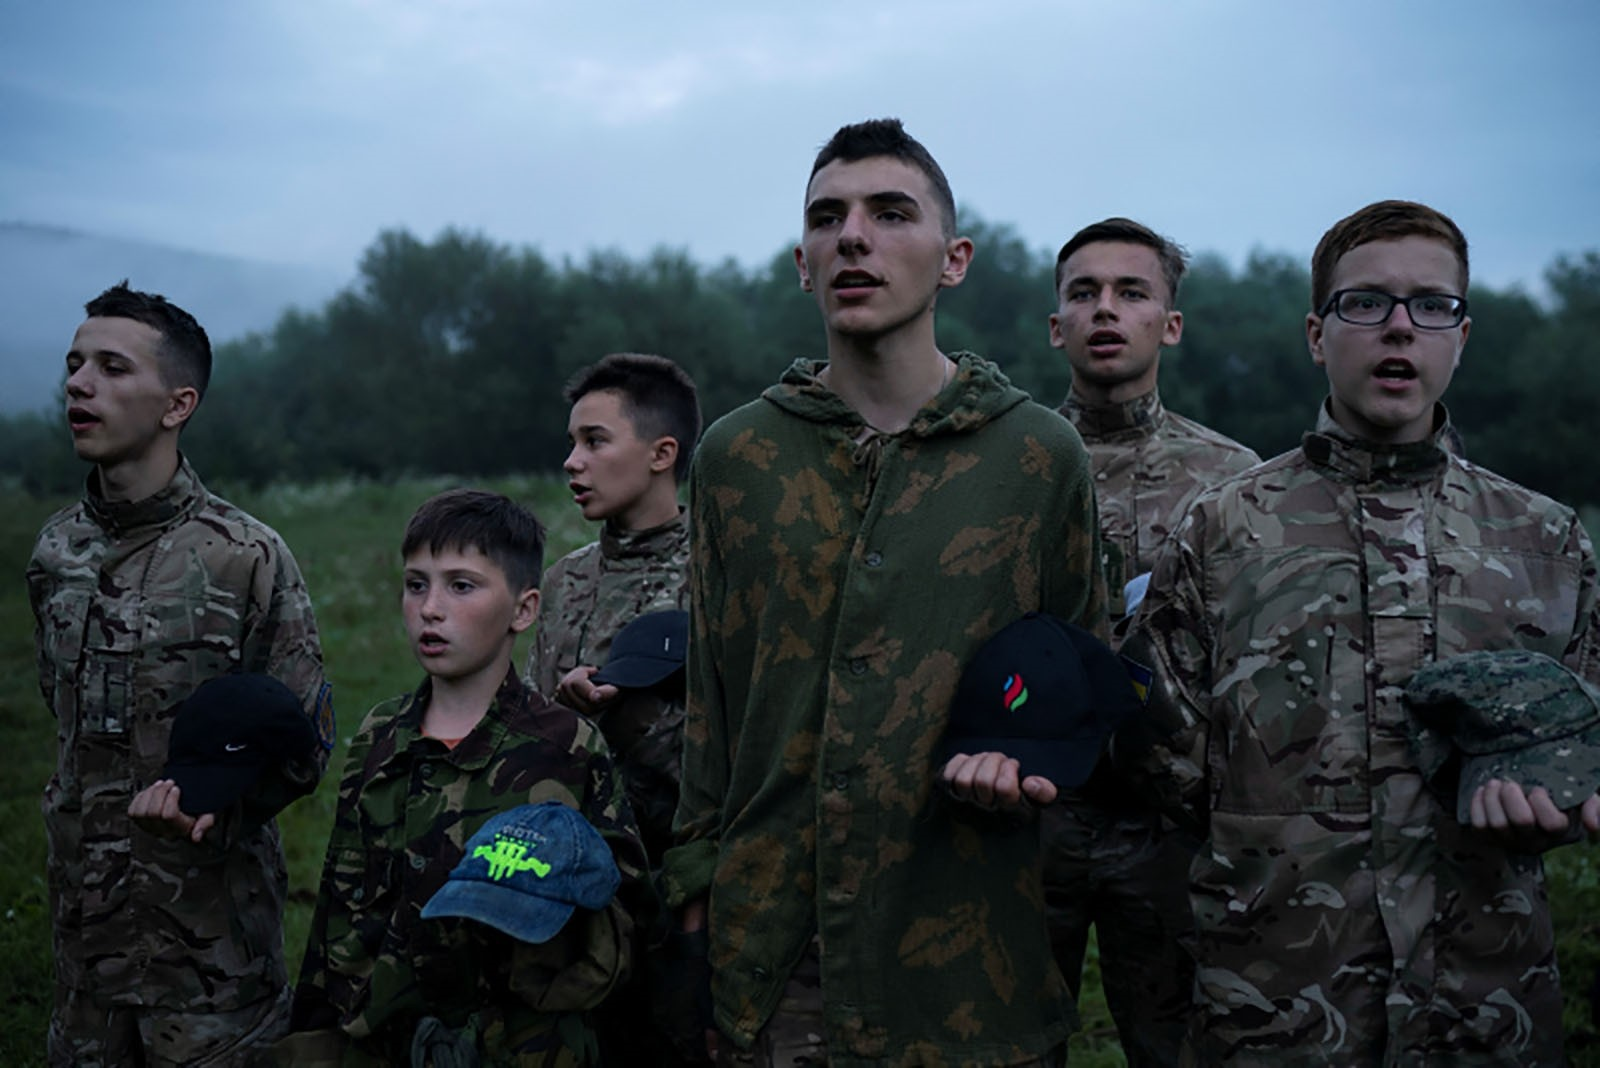 Mykhailo, 18, center, leads other young participants of the camp as they stand in formation singing nationalist songs.